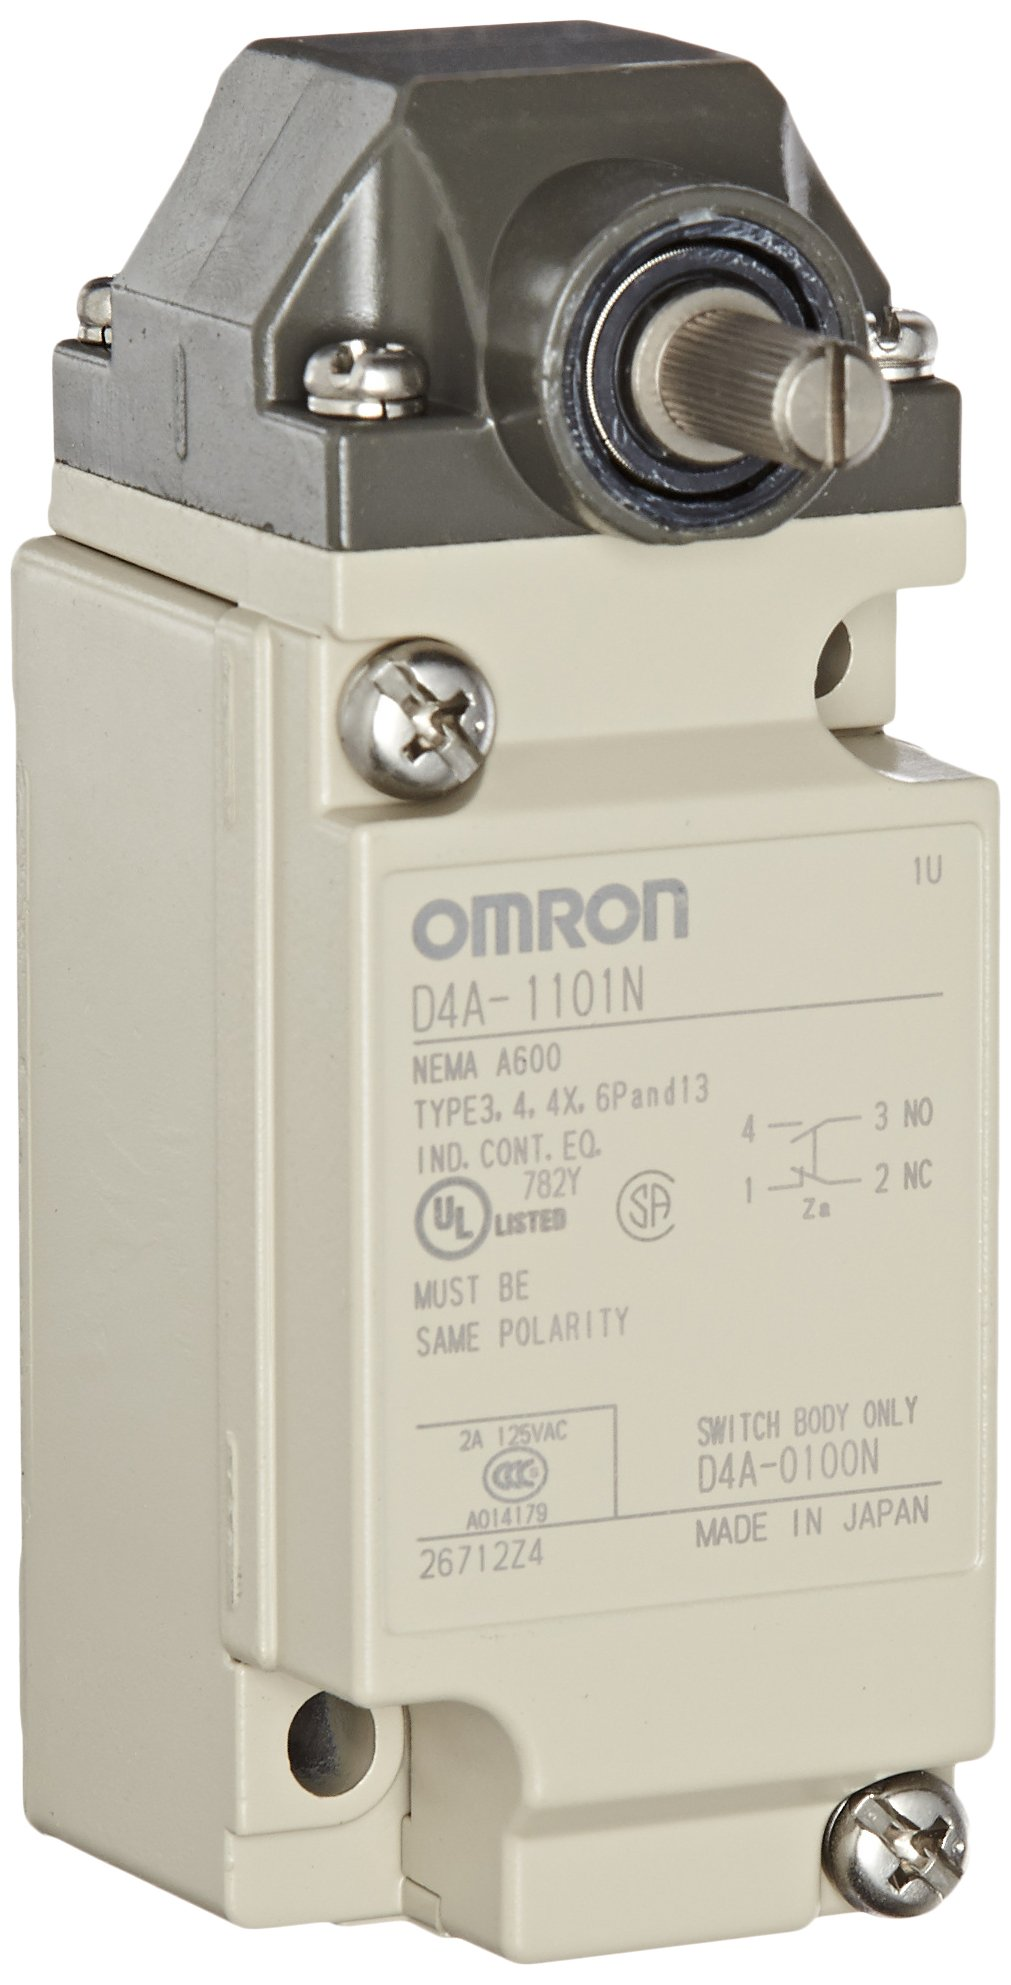 Omron D4A-1101-N General Purpose Limit Switch, Roller Lever, Standard Type, 1/2-14 NPT Conduit Size, Single Pole Double Throw, Double Break by Omron